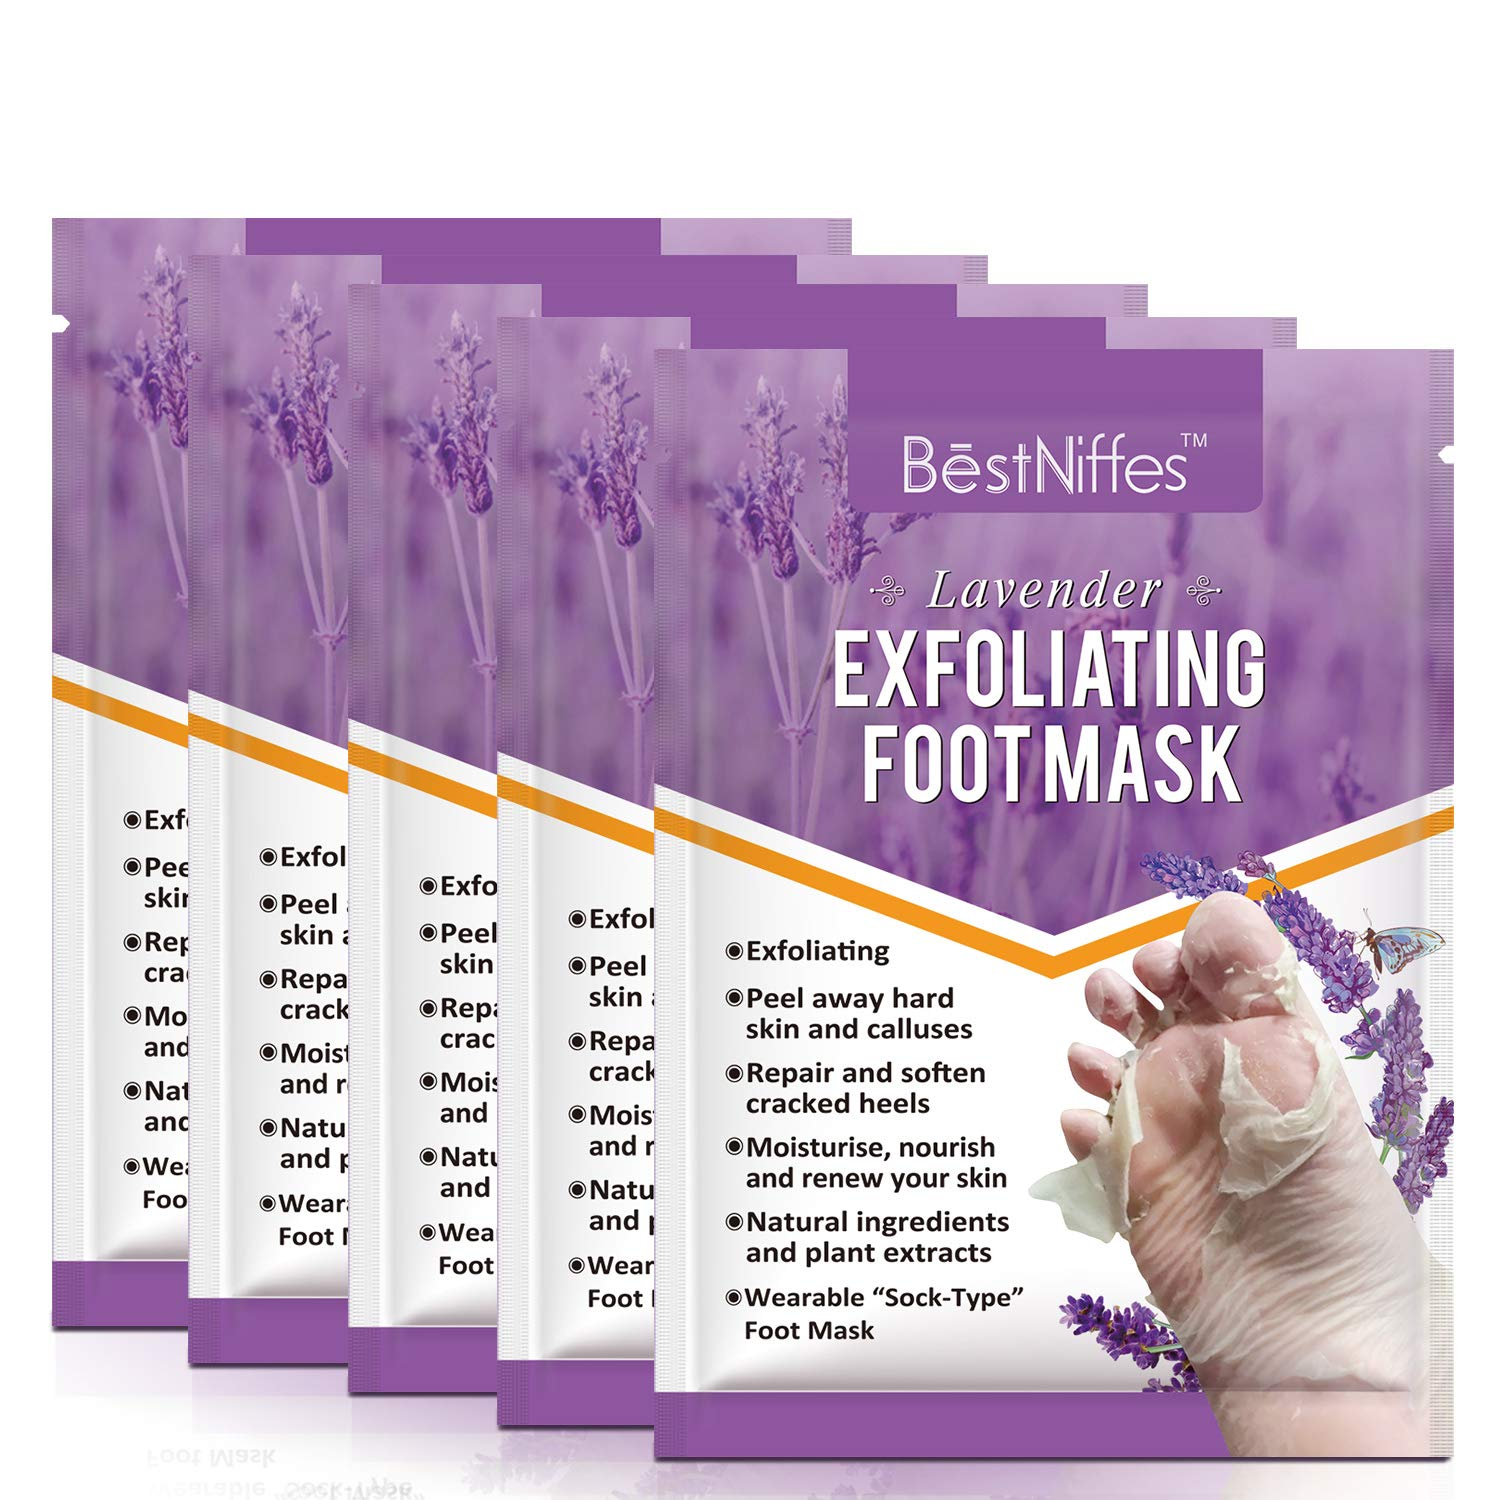 Lavender Foot Peel Mask Exfoliating - 5 Pack Baby Peeling Scrub Mask Dead Skin cells Remover Repairs Rough Heels & Get Smooth in 5 Days Moisturizing Foot mask for Men Women